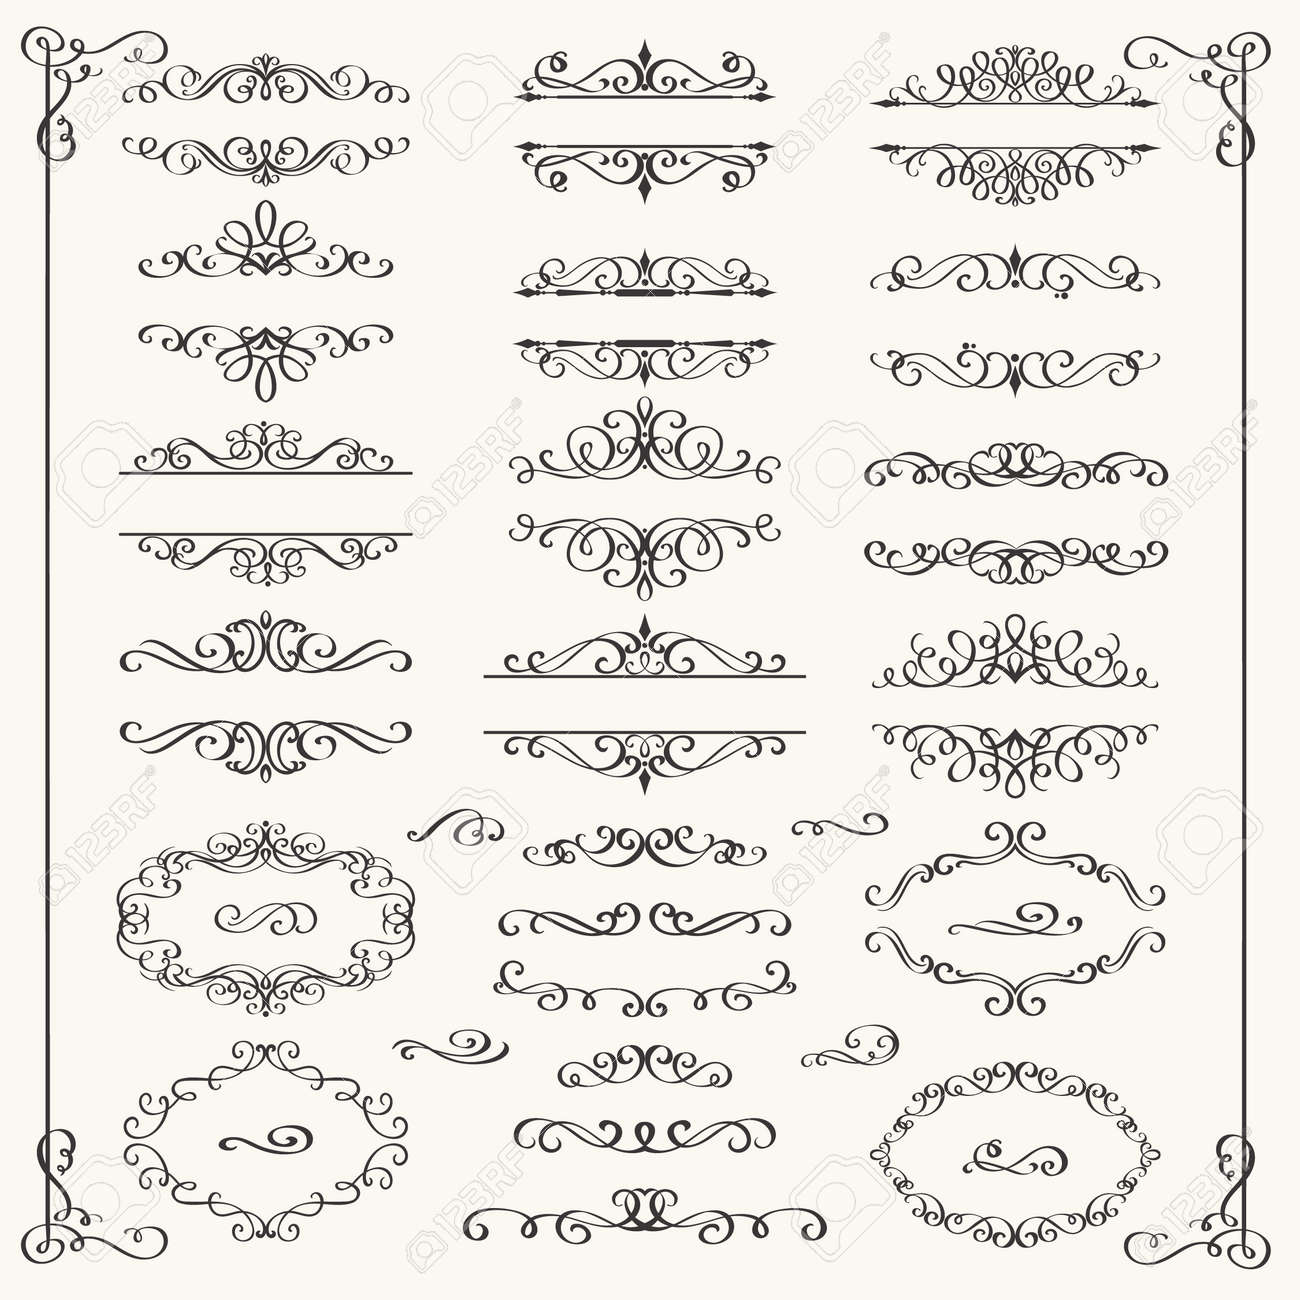 Calligraphic Design Elements Decorative SwirlsScrolls And Dividers Vintage Vector Illustration Stock